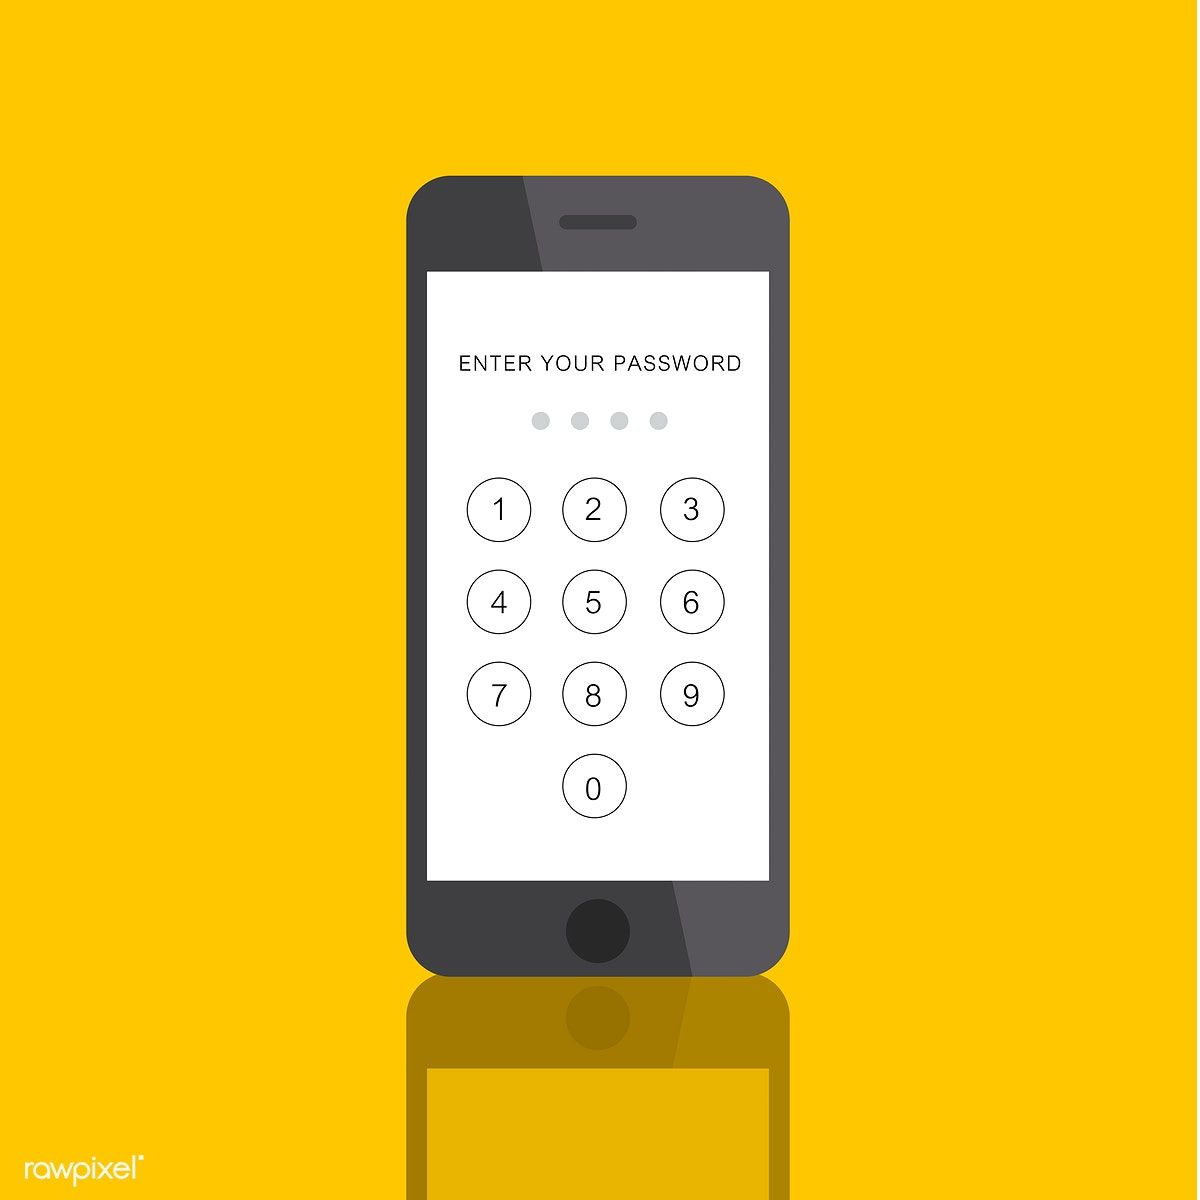 Download Premium Vector Of Illustration Of Mobile Phone With Enter Mobile Phone Phone Computer Humor